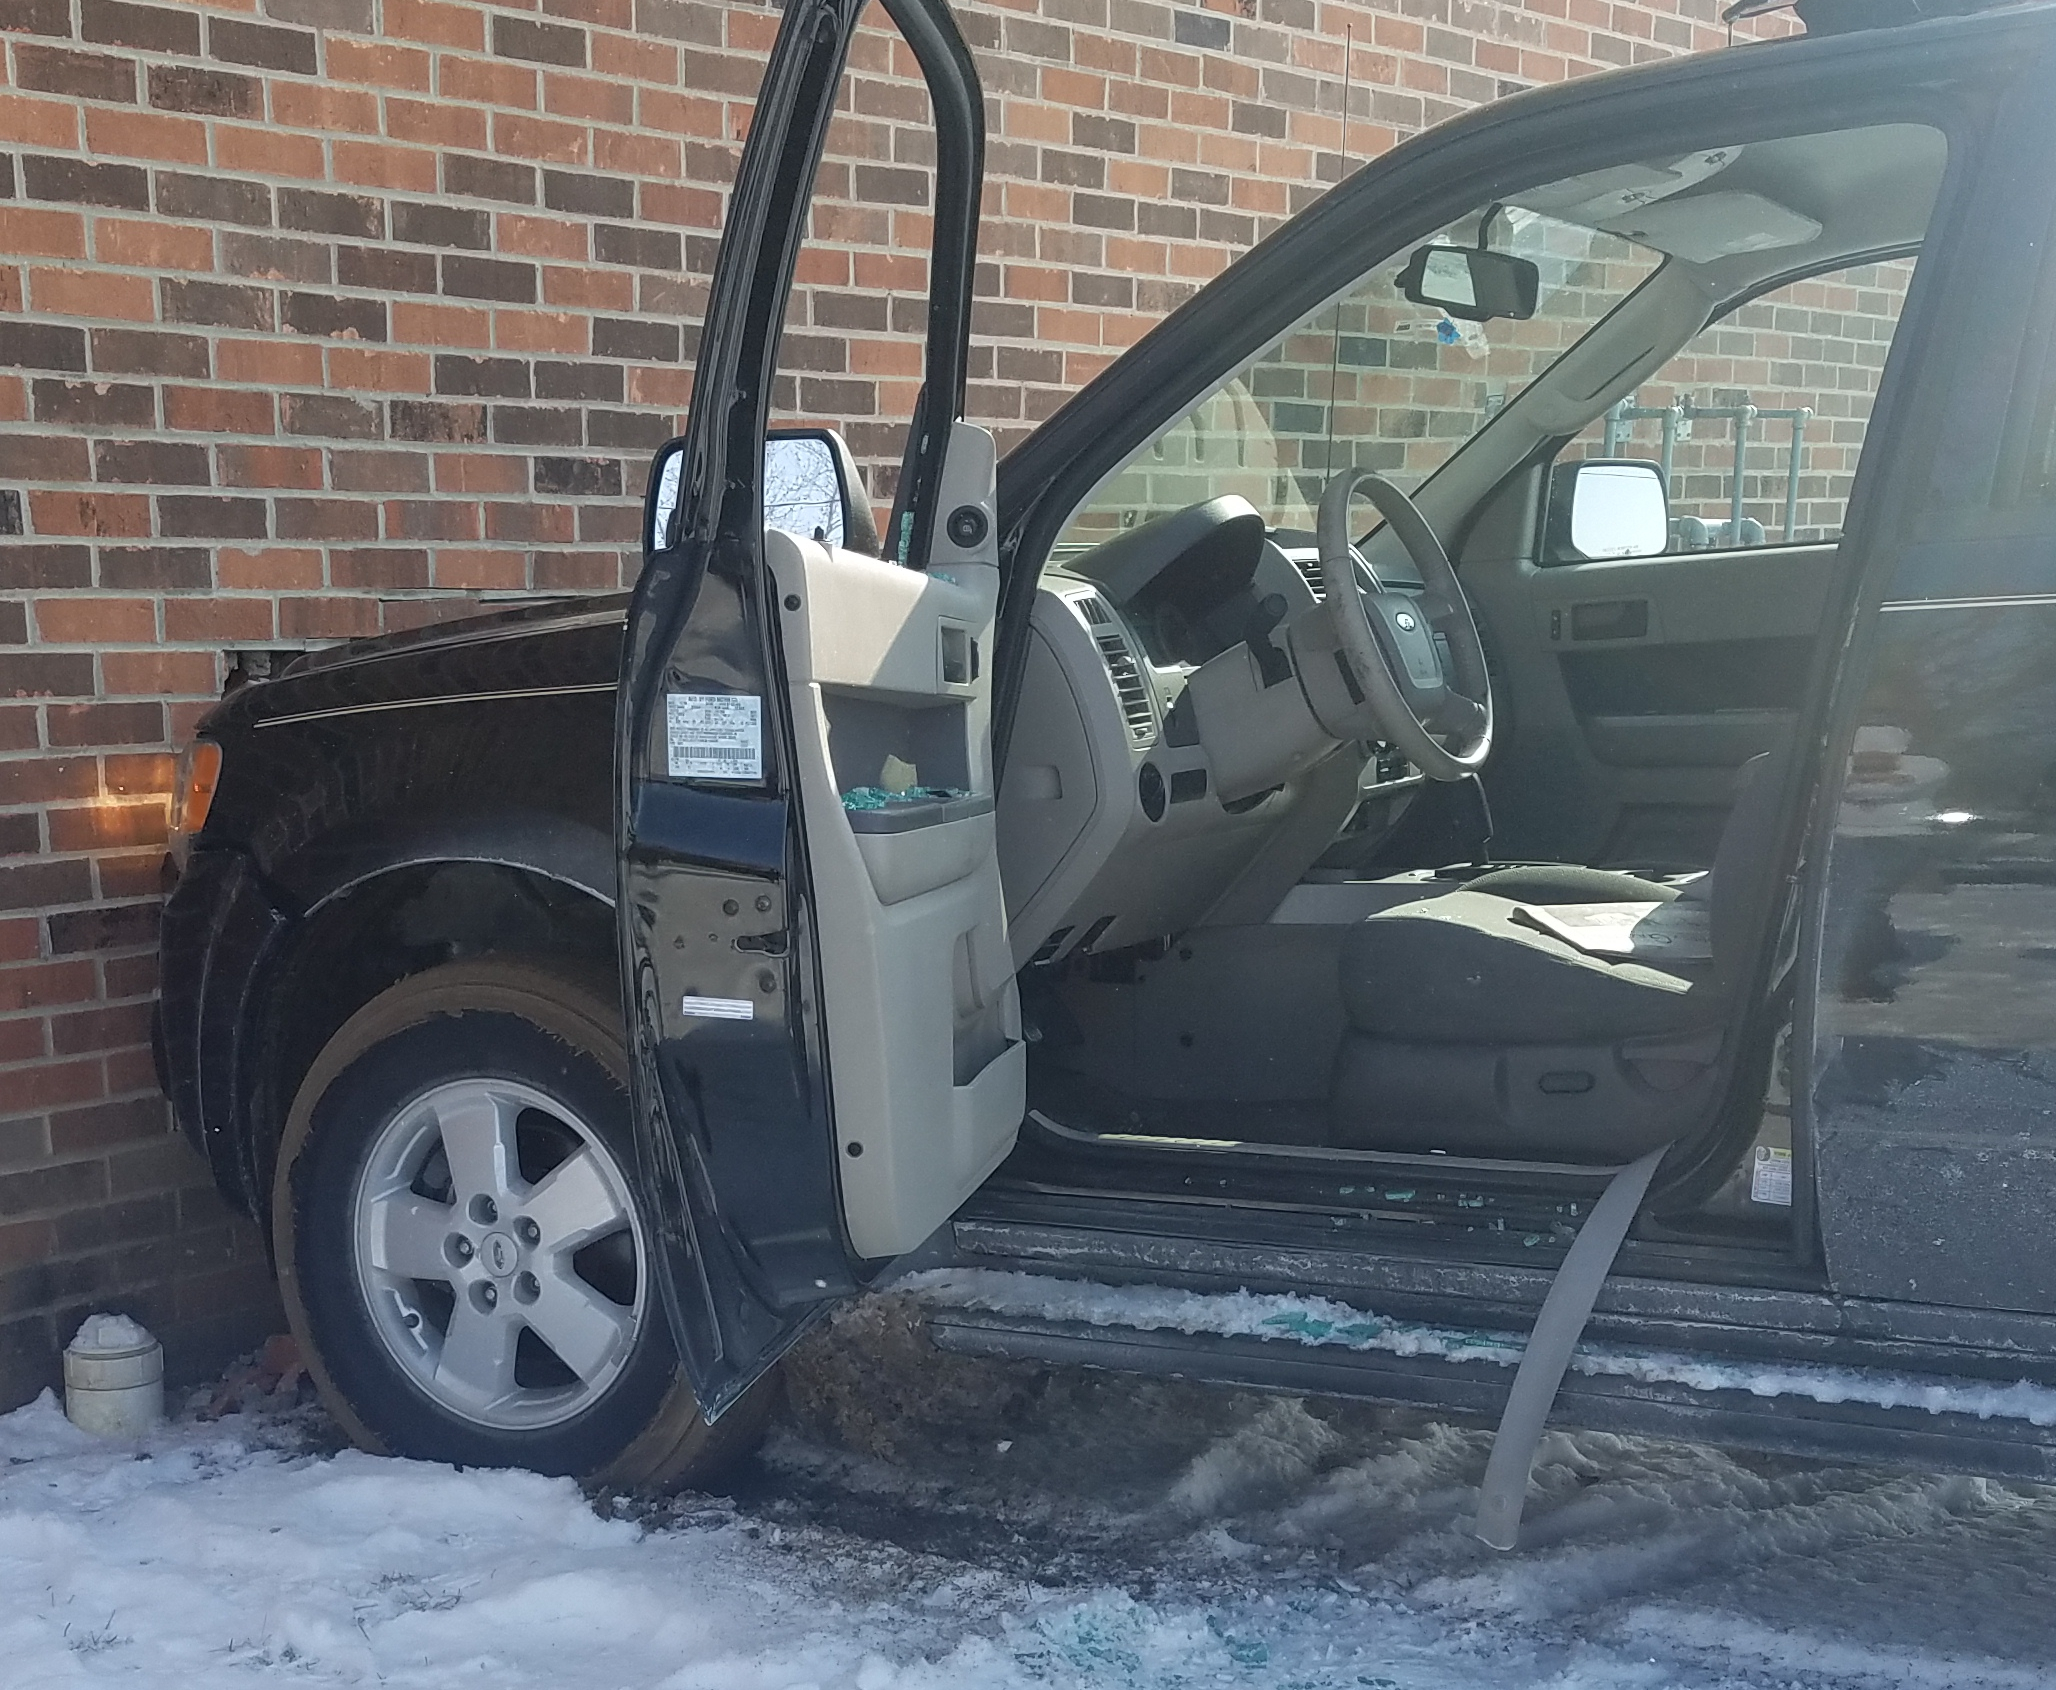 BREAKING: Man Drives into Apartment Complex.